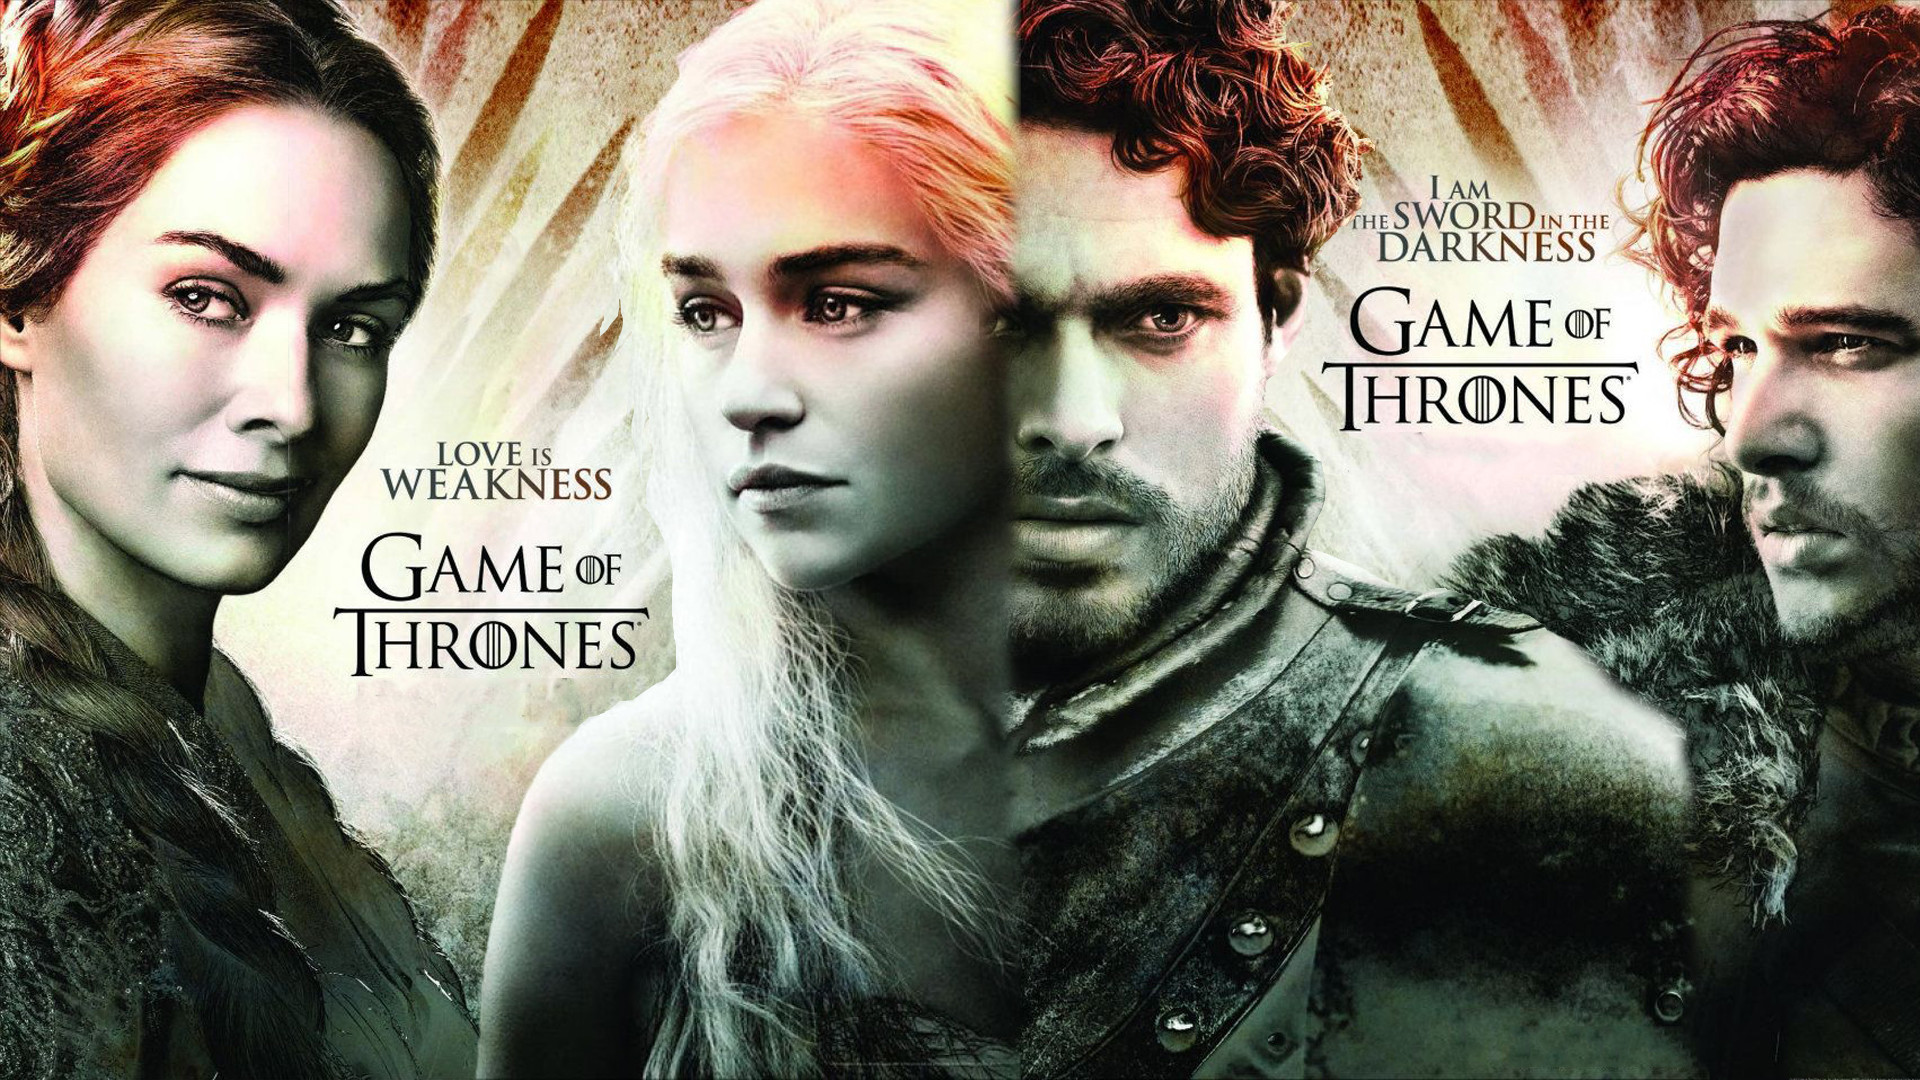 1920x1080 TV Show - Game Of Thrones Jon Snow Richard Madden Robb Stark Kit Harington  Emilia Clarke